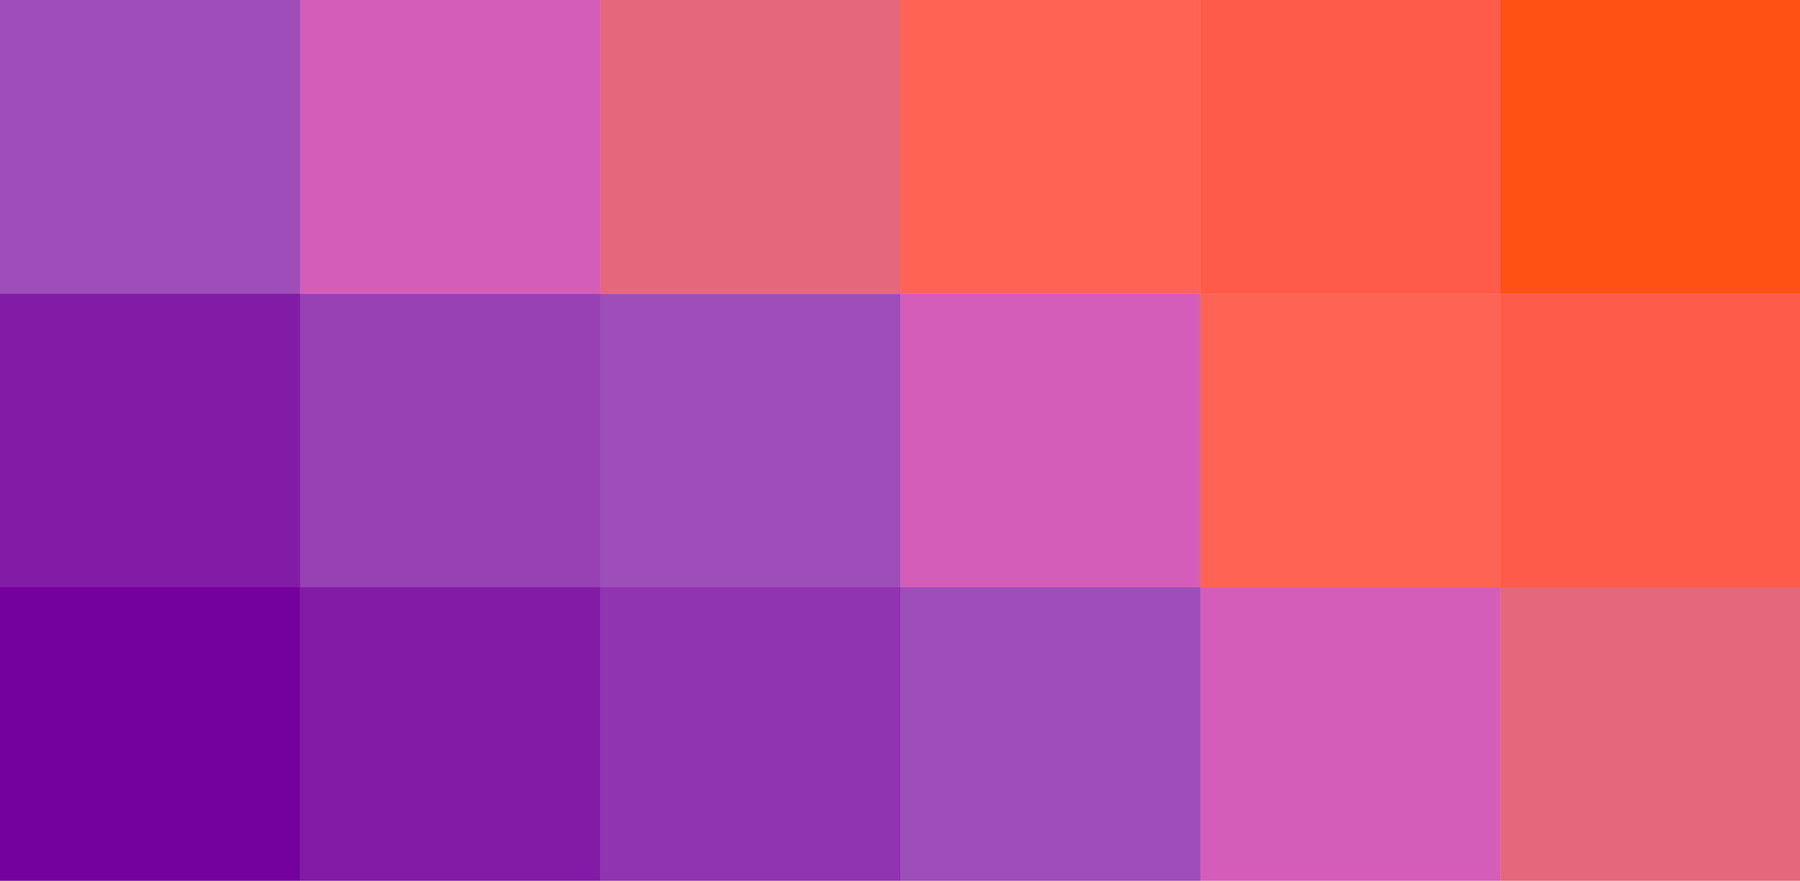 Outtake of purple and orange colored pixels from the Nordisk Games website